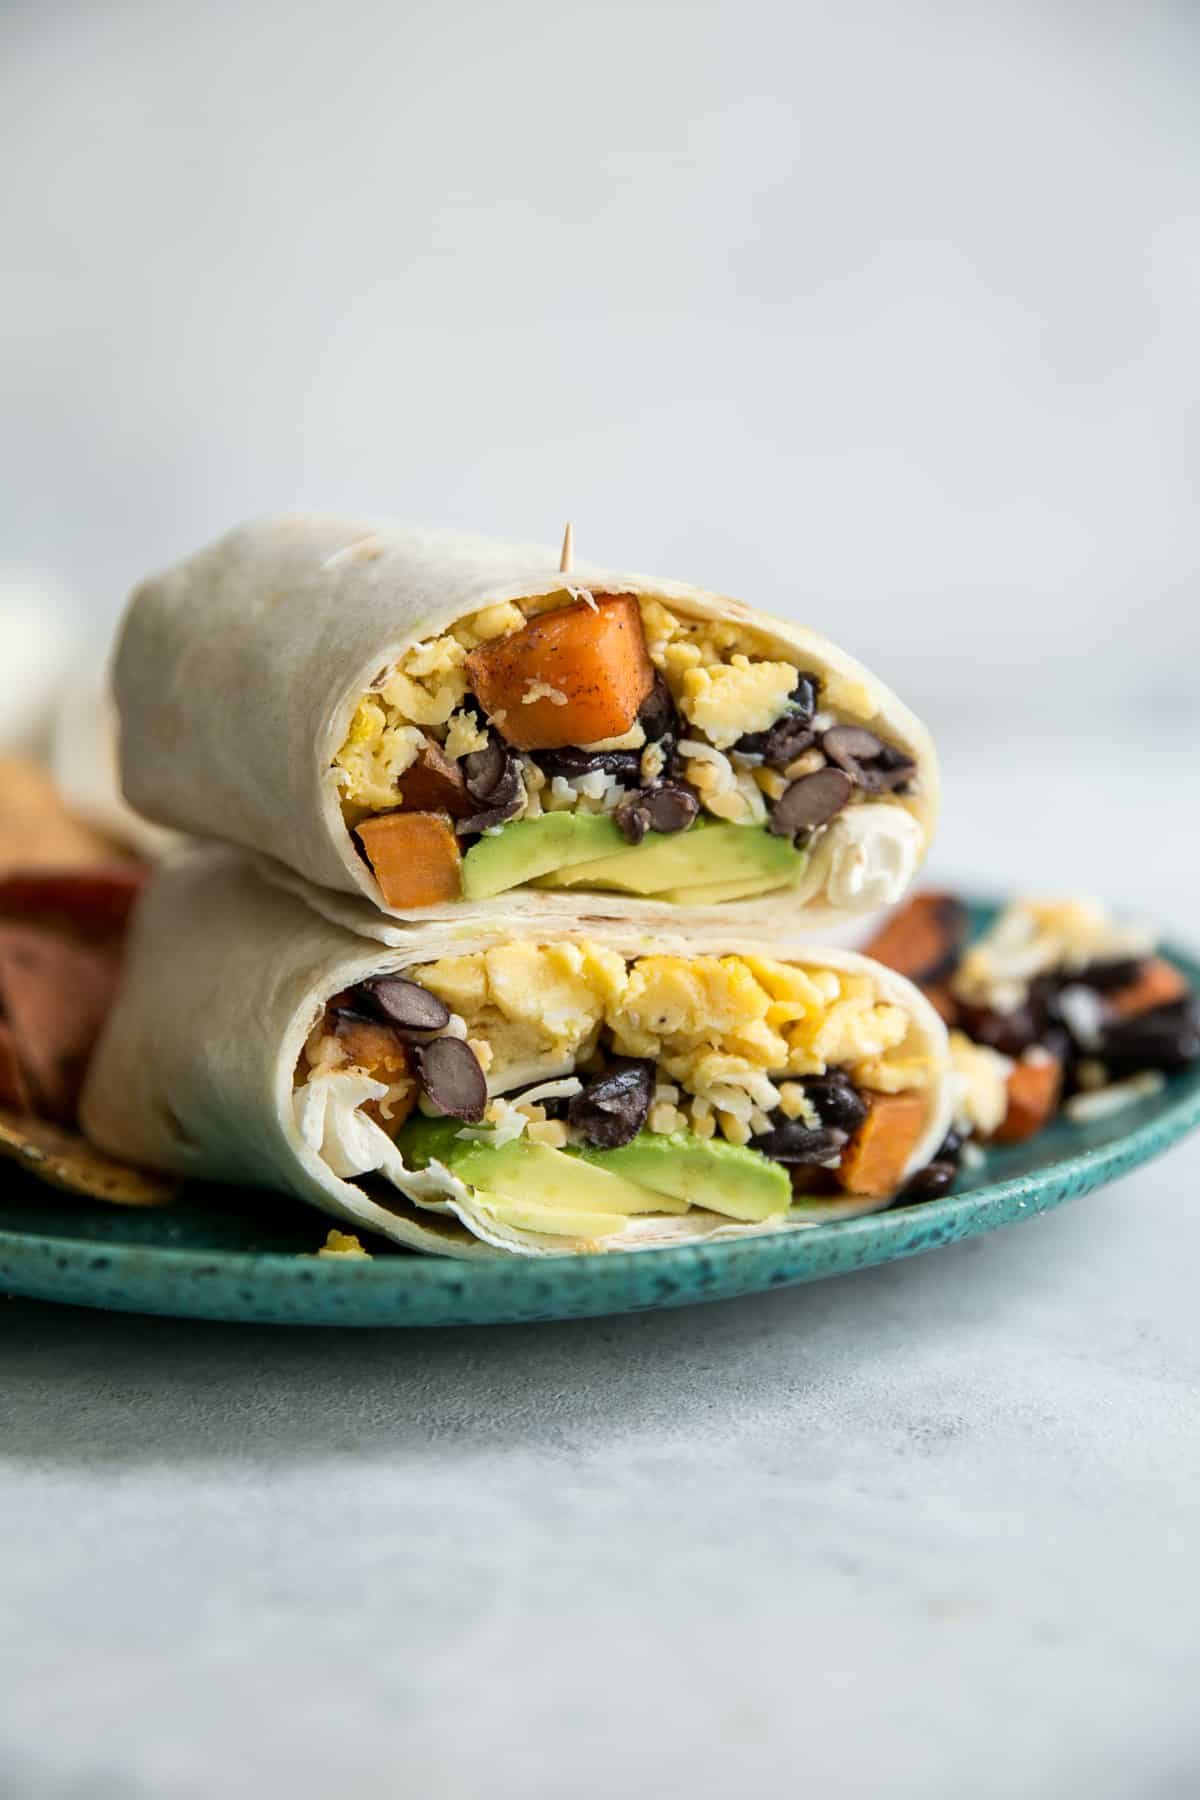 breakfast burrito on a teal plate with eggs sweet potatoes black beans and avocados